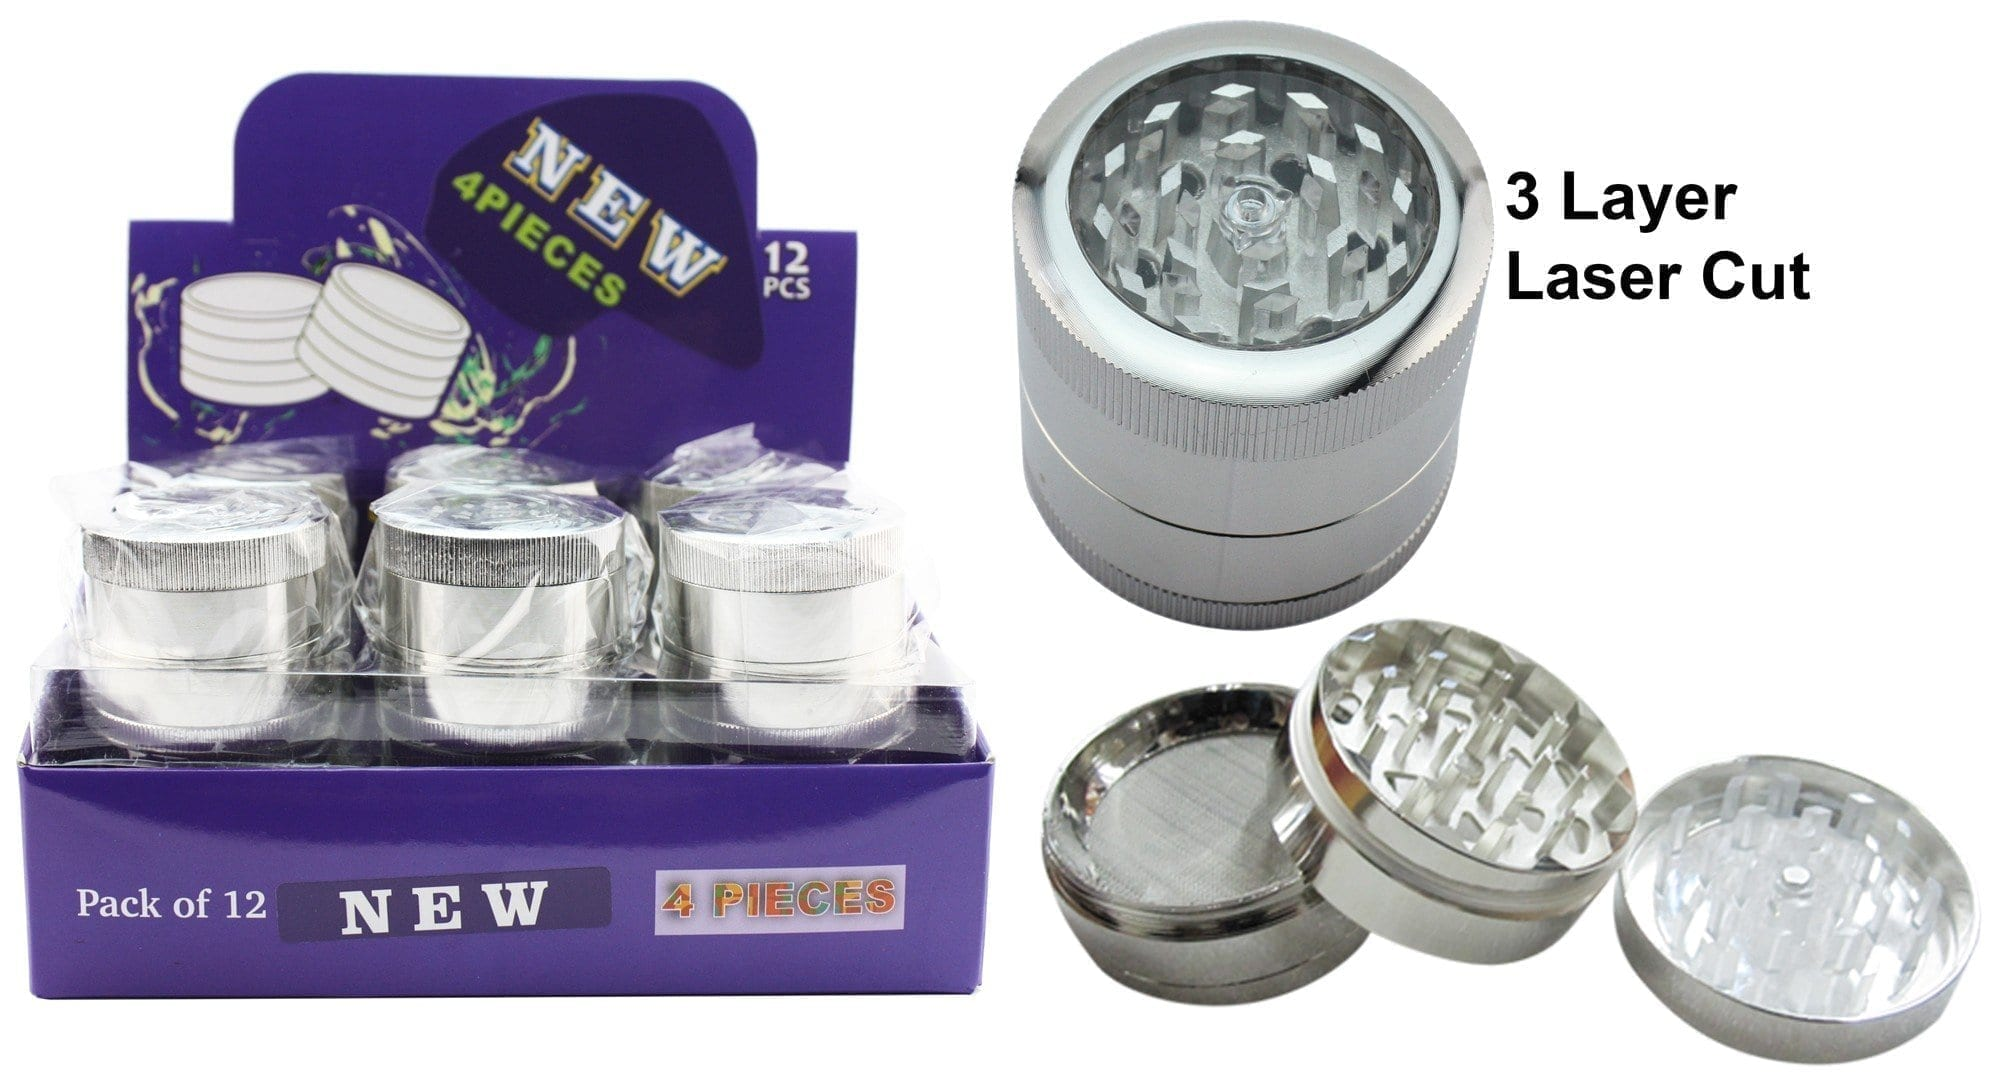 3 Piece Stainless Steel Grinder With Storage